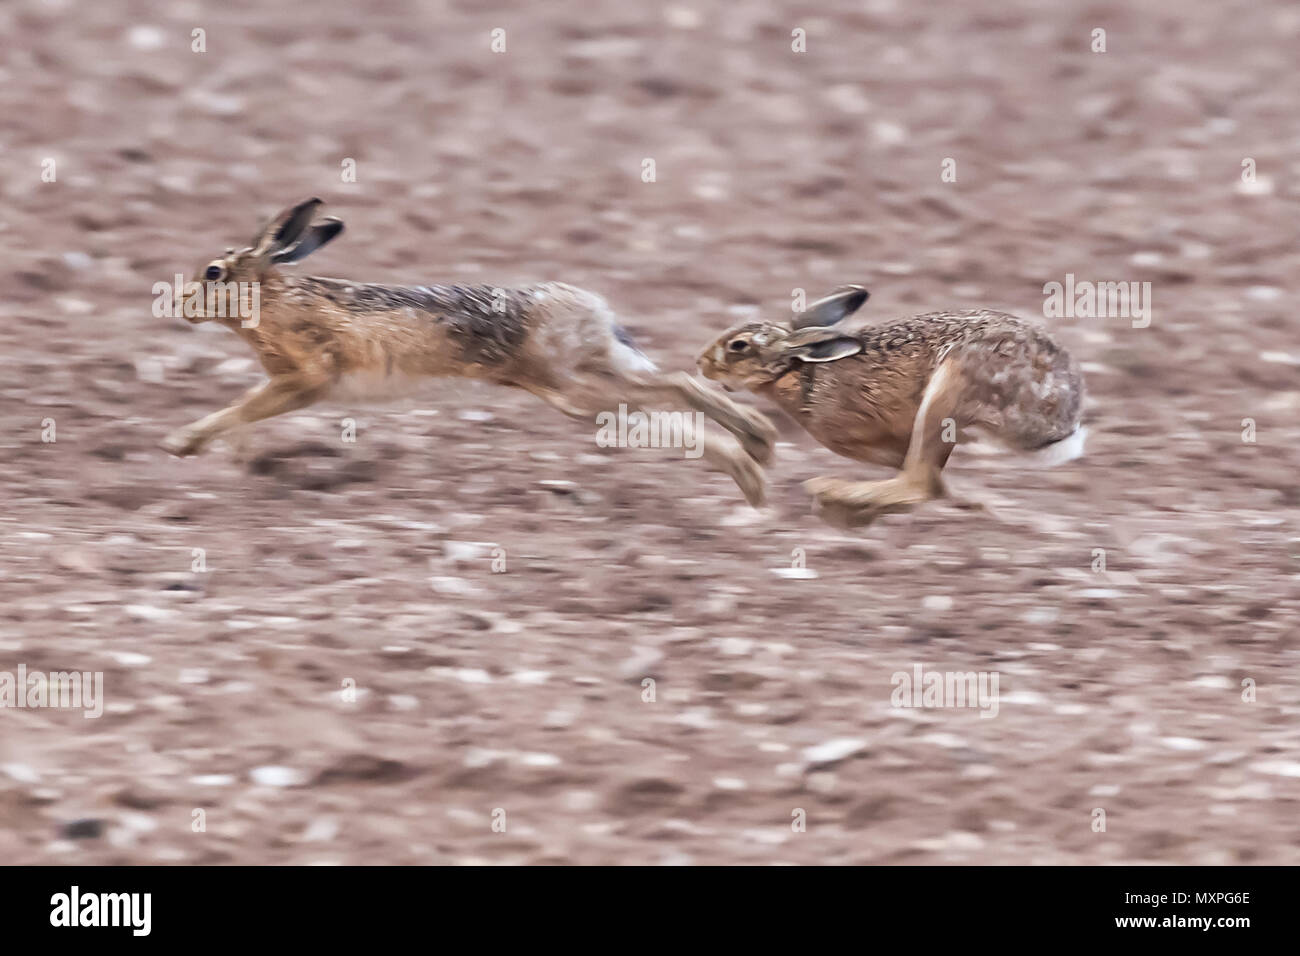 Running brown hares across a dirt field in Norfolk during mating season. Wild animals caught at speed during a chase - Stock Image